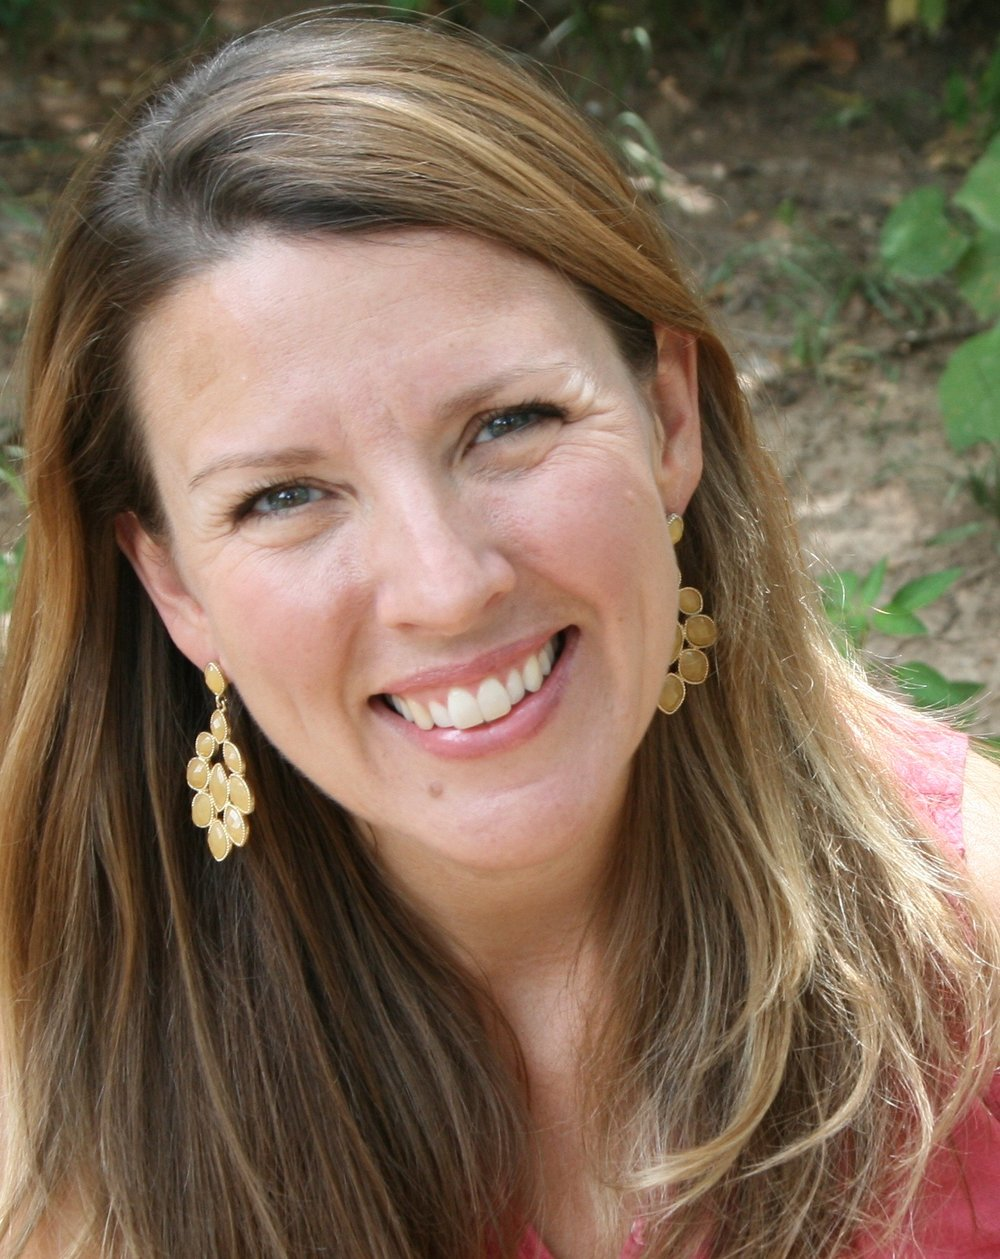 Welcome to the the website of Kathryn Rombs, Catholic wife, mother,philosophy instructor,who is passionate about sacredness of Catholic motherhood and its being reflective of the image of Christ. -